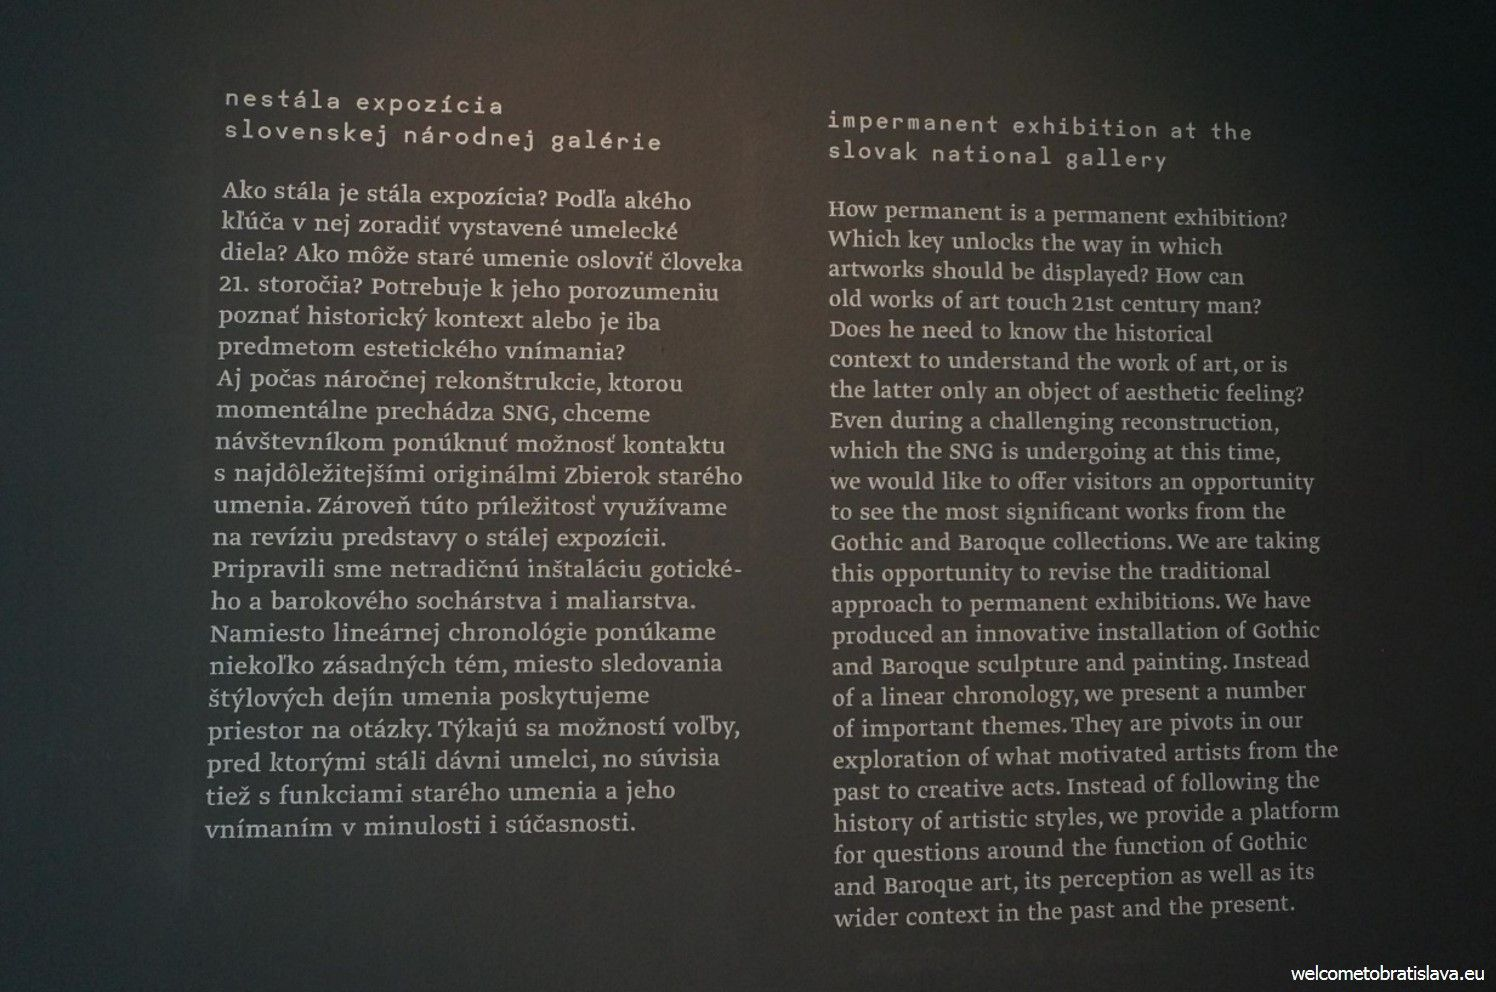 English descriptions on the walls